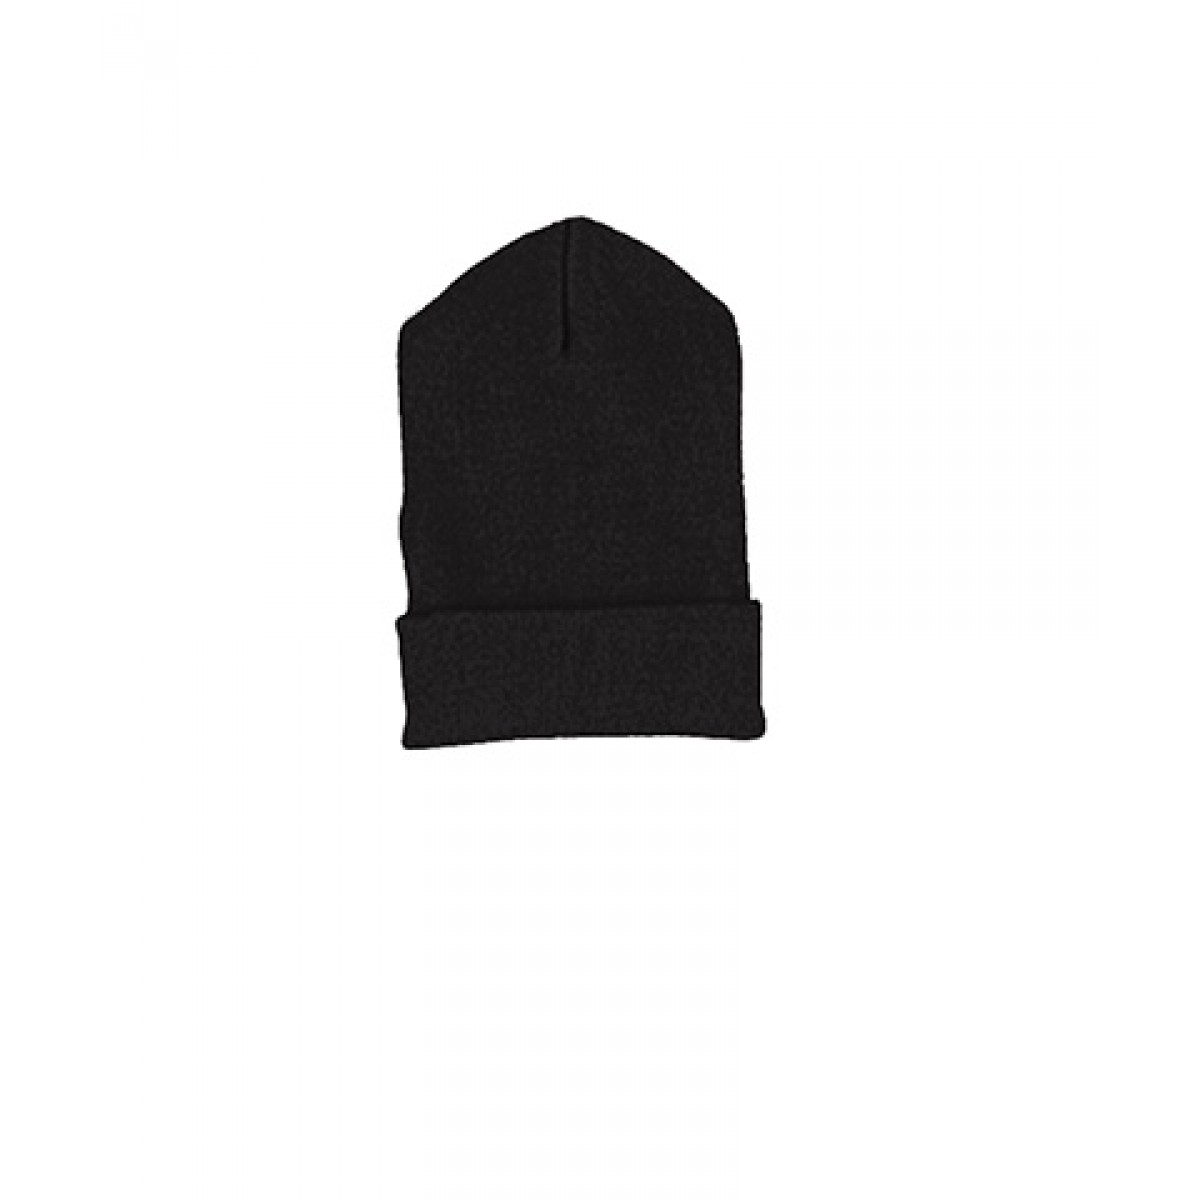 Yupoong Cuffed Knit Cap-Black-M